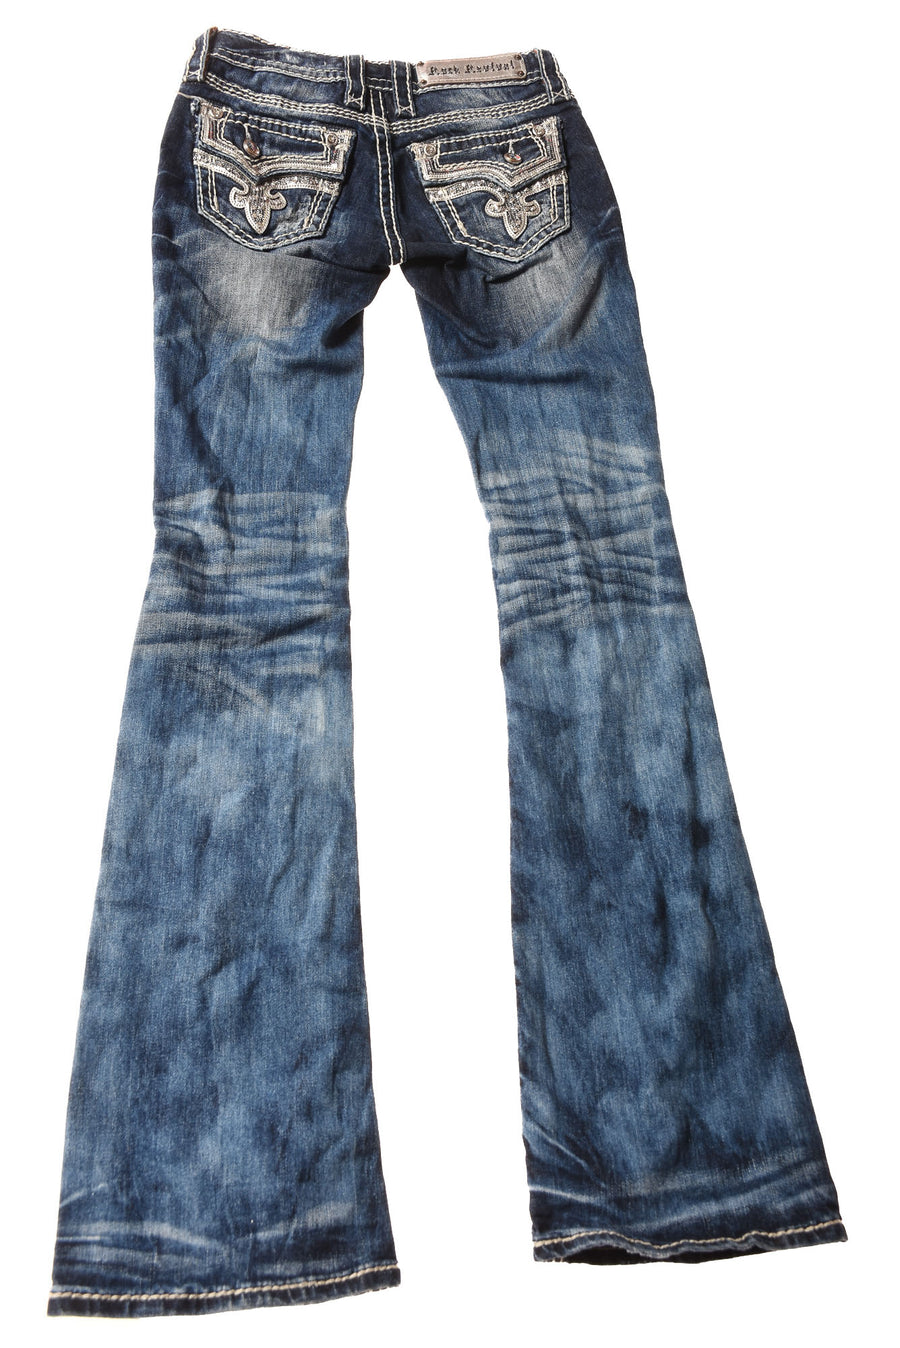 USED Rock Revival Women's Jeans 24 Blue